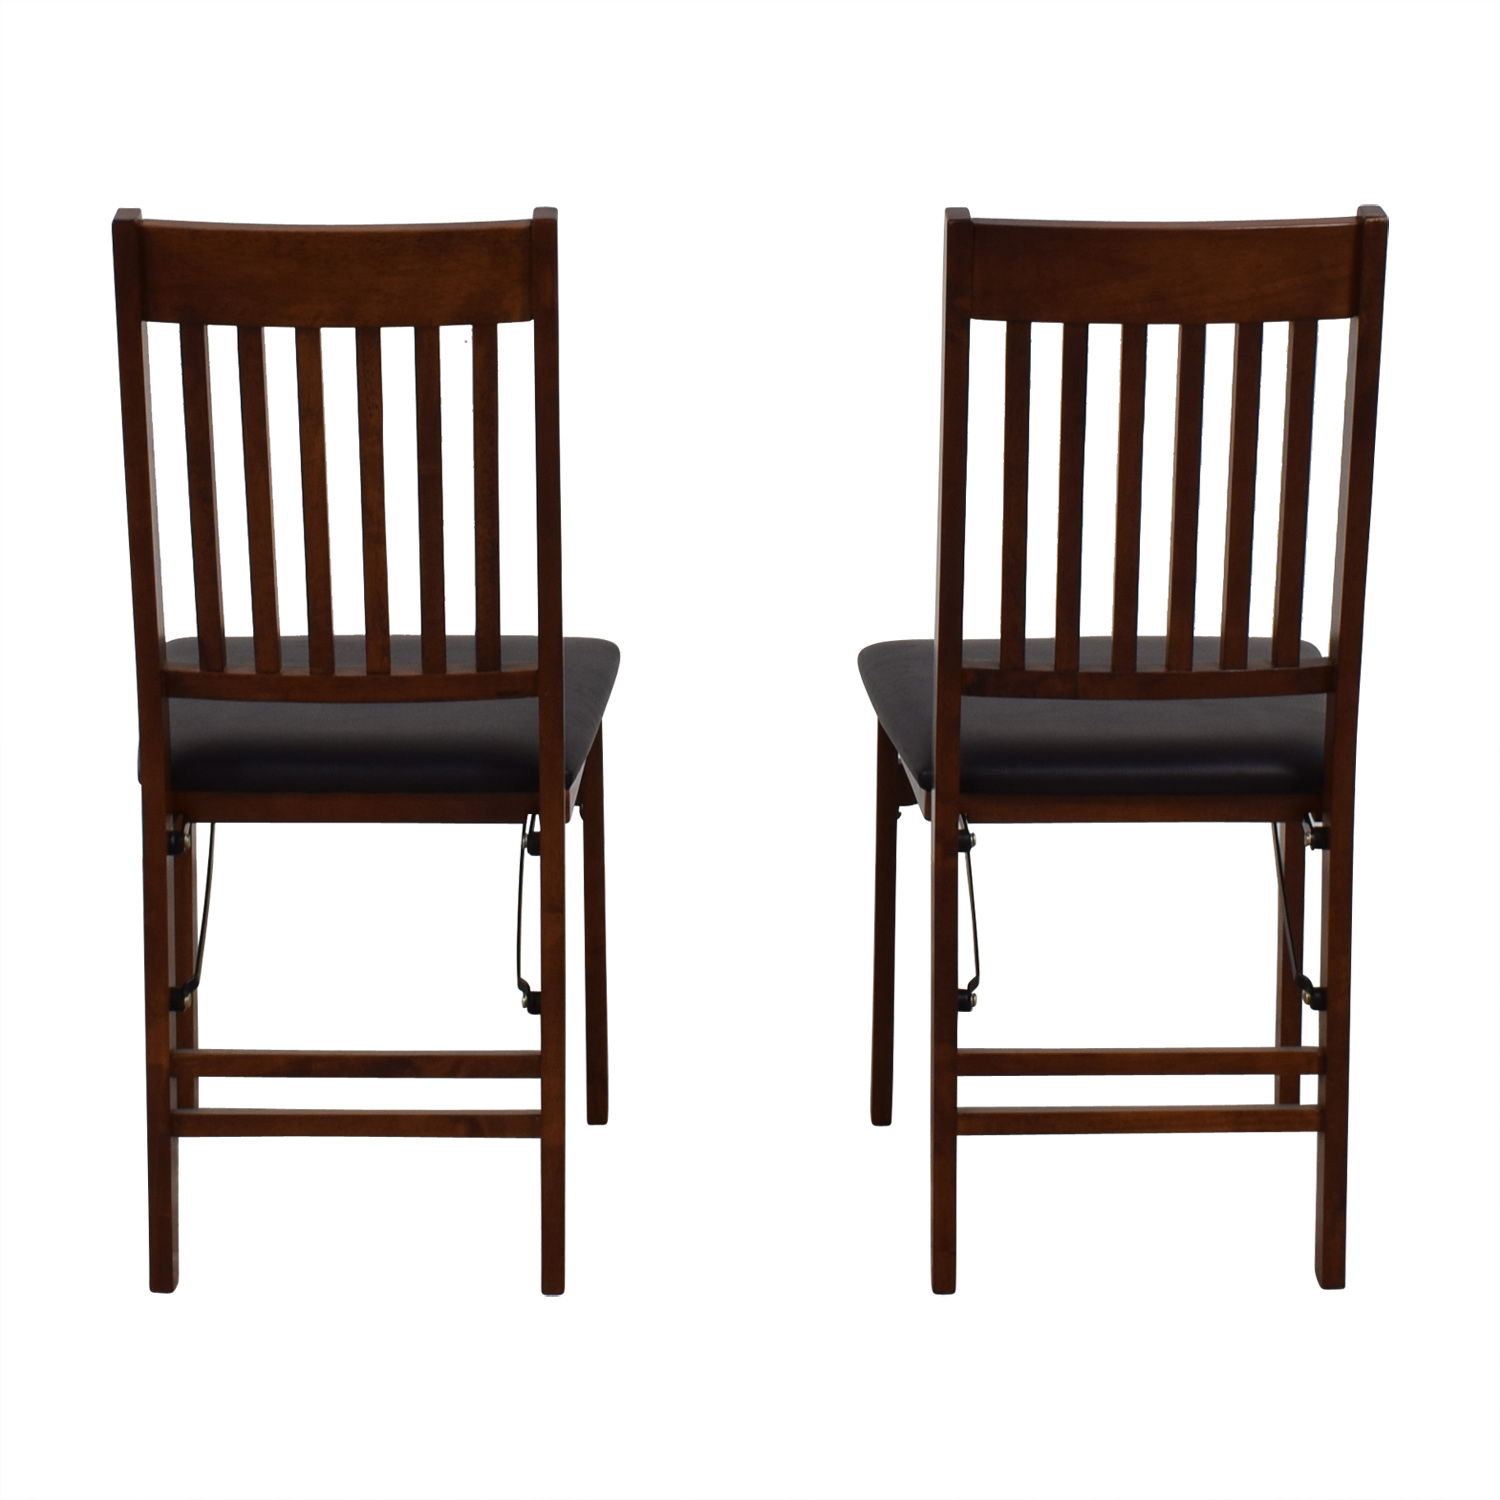 buy Linon Home Decor Linon Home Decor Mission Back Wood Folding Chairs online